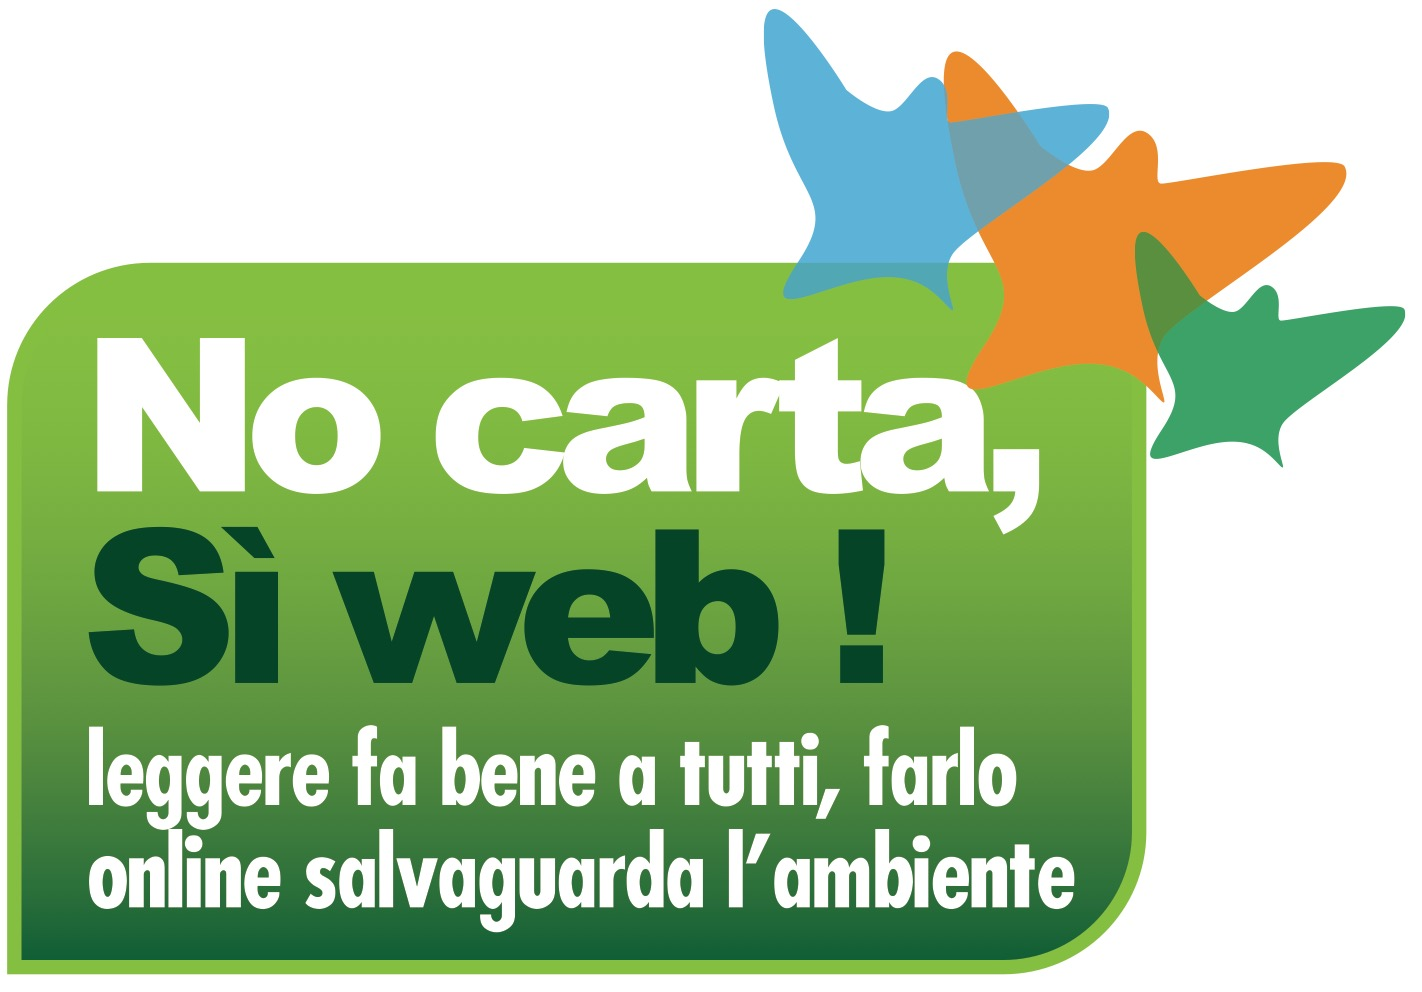 No carta, sì web!